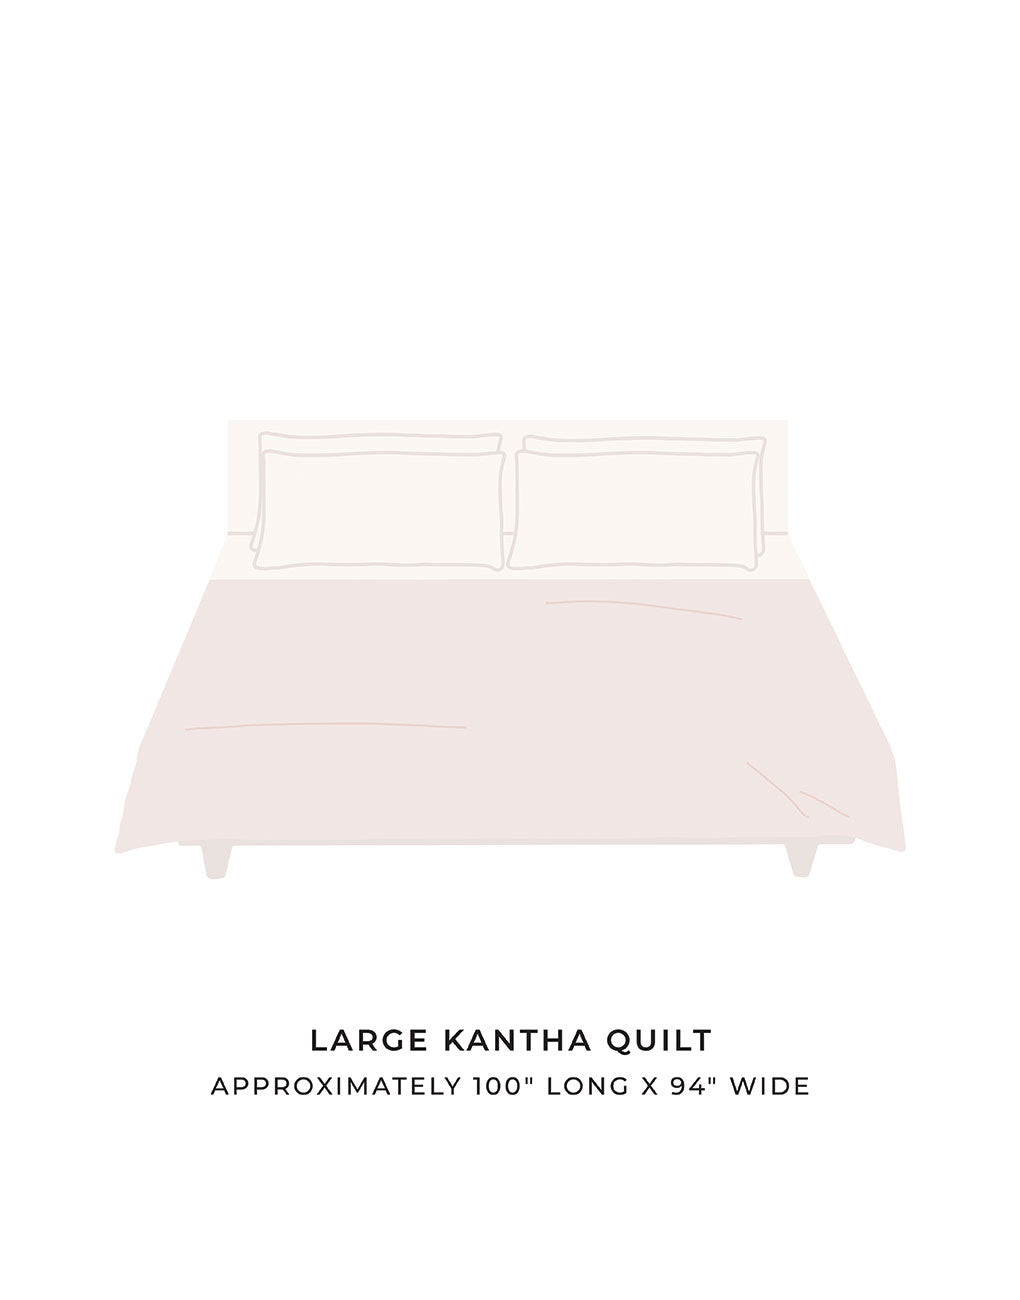 Large Kantha Quilt | The Little Market